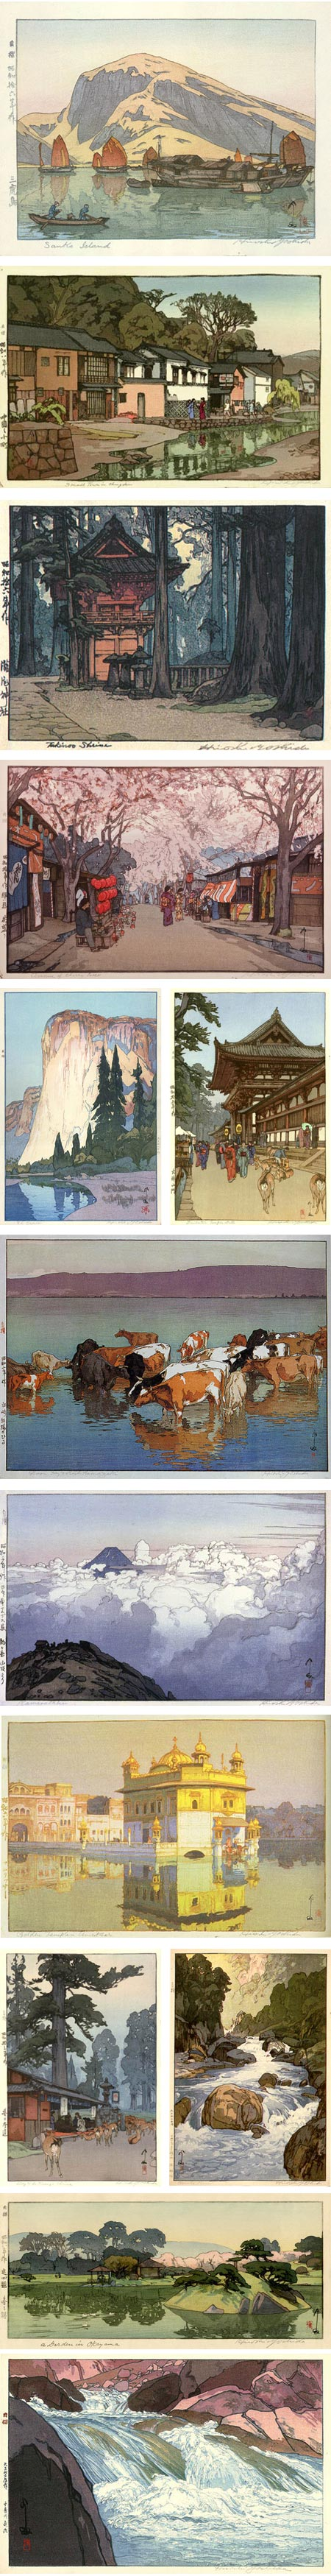 Hiroshi Yoshida